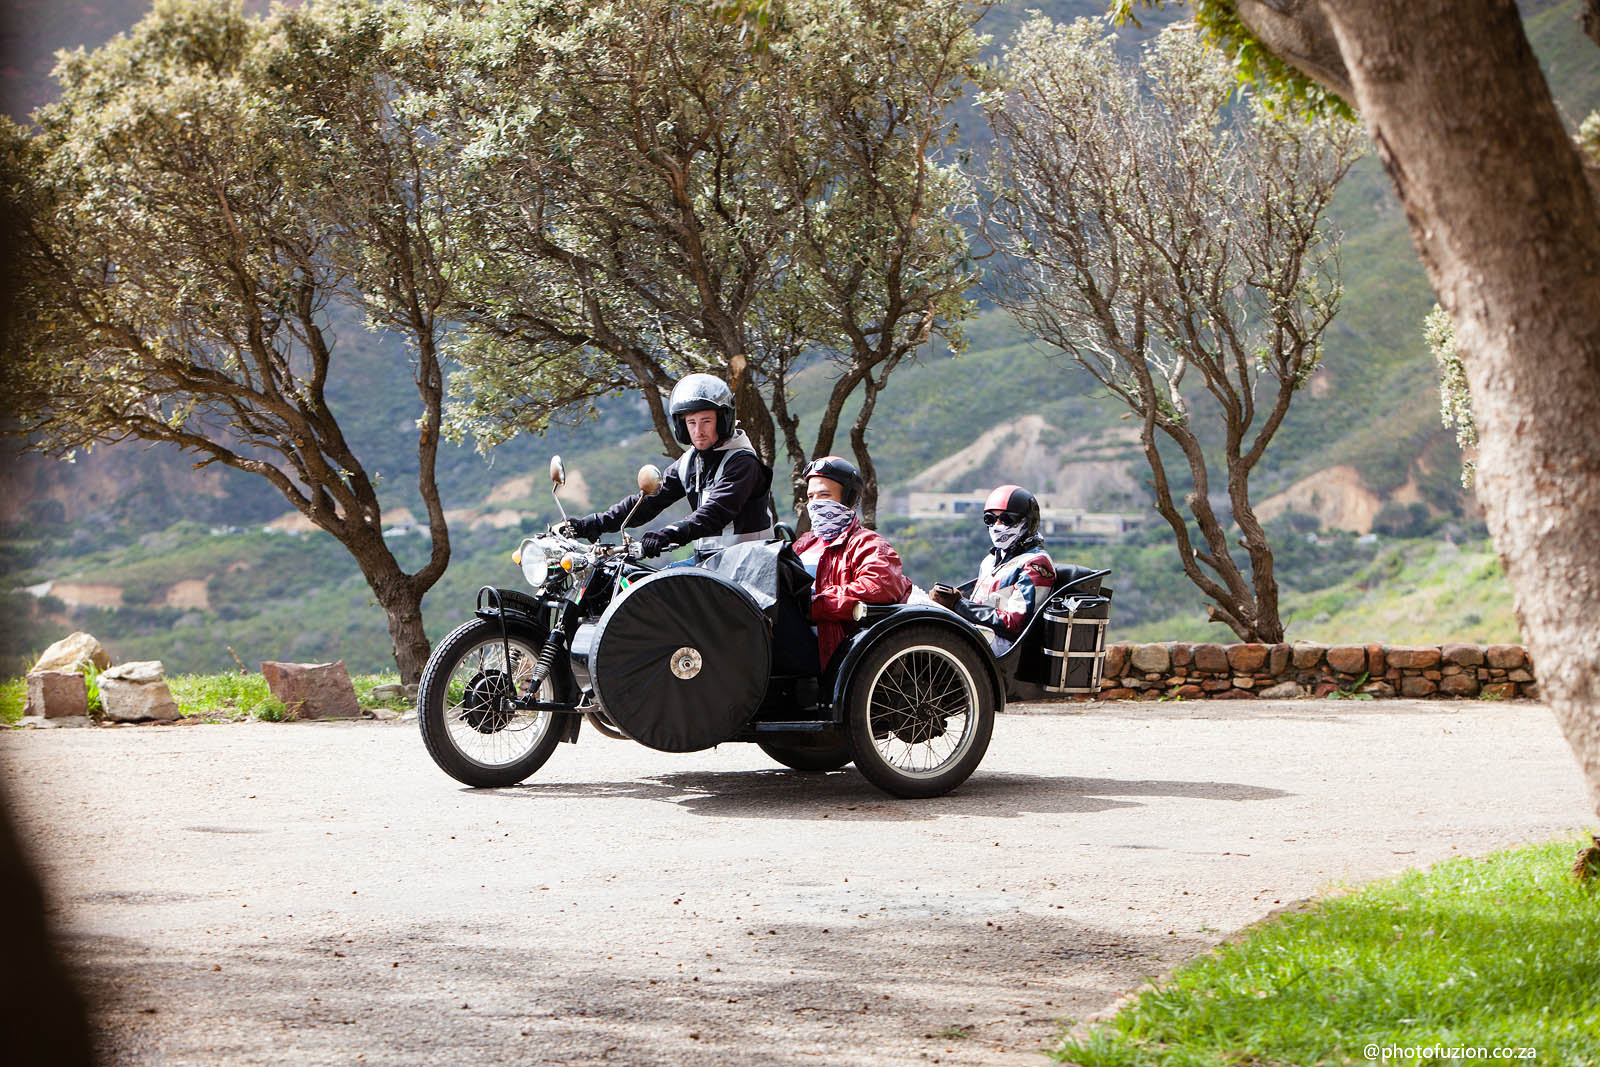 Wesley and Raquel sidecar proposal